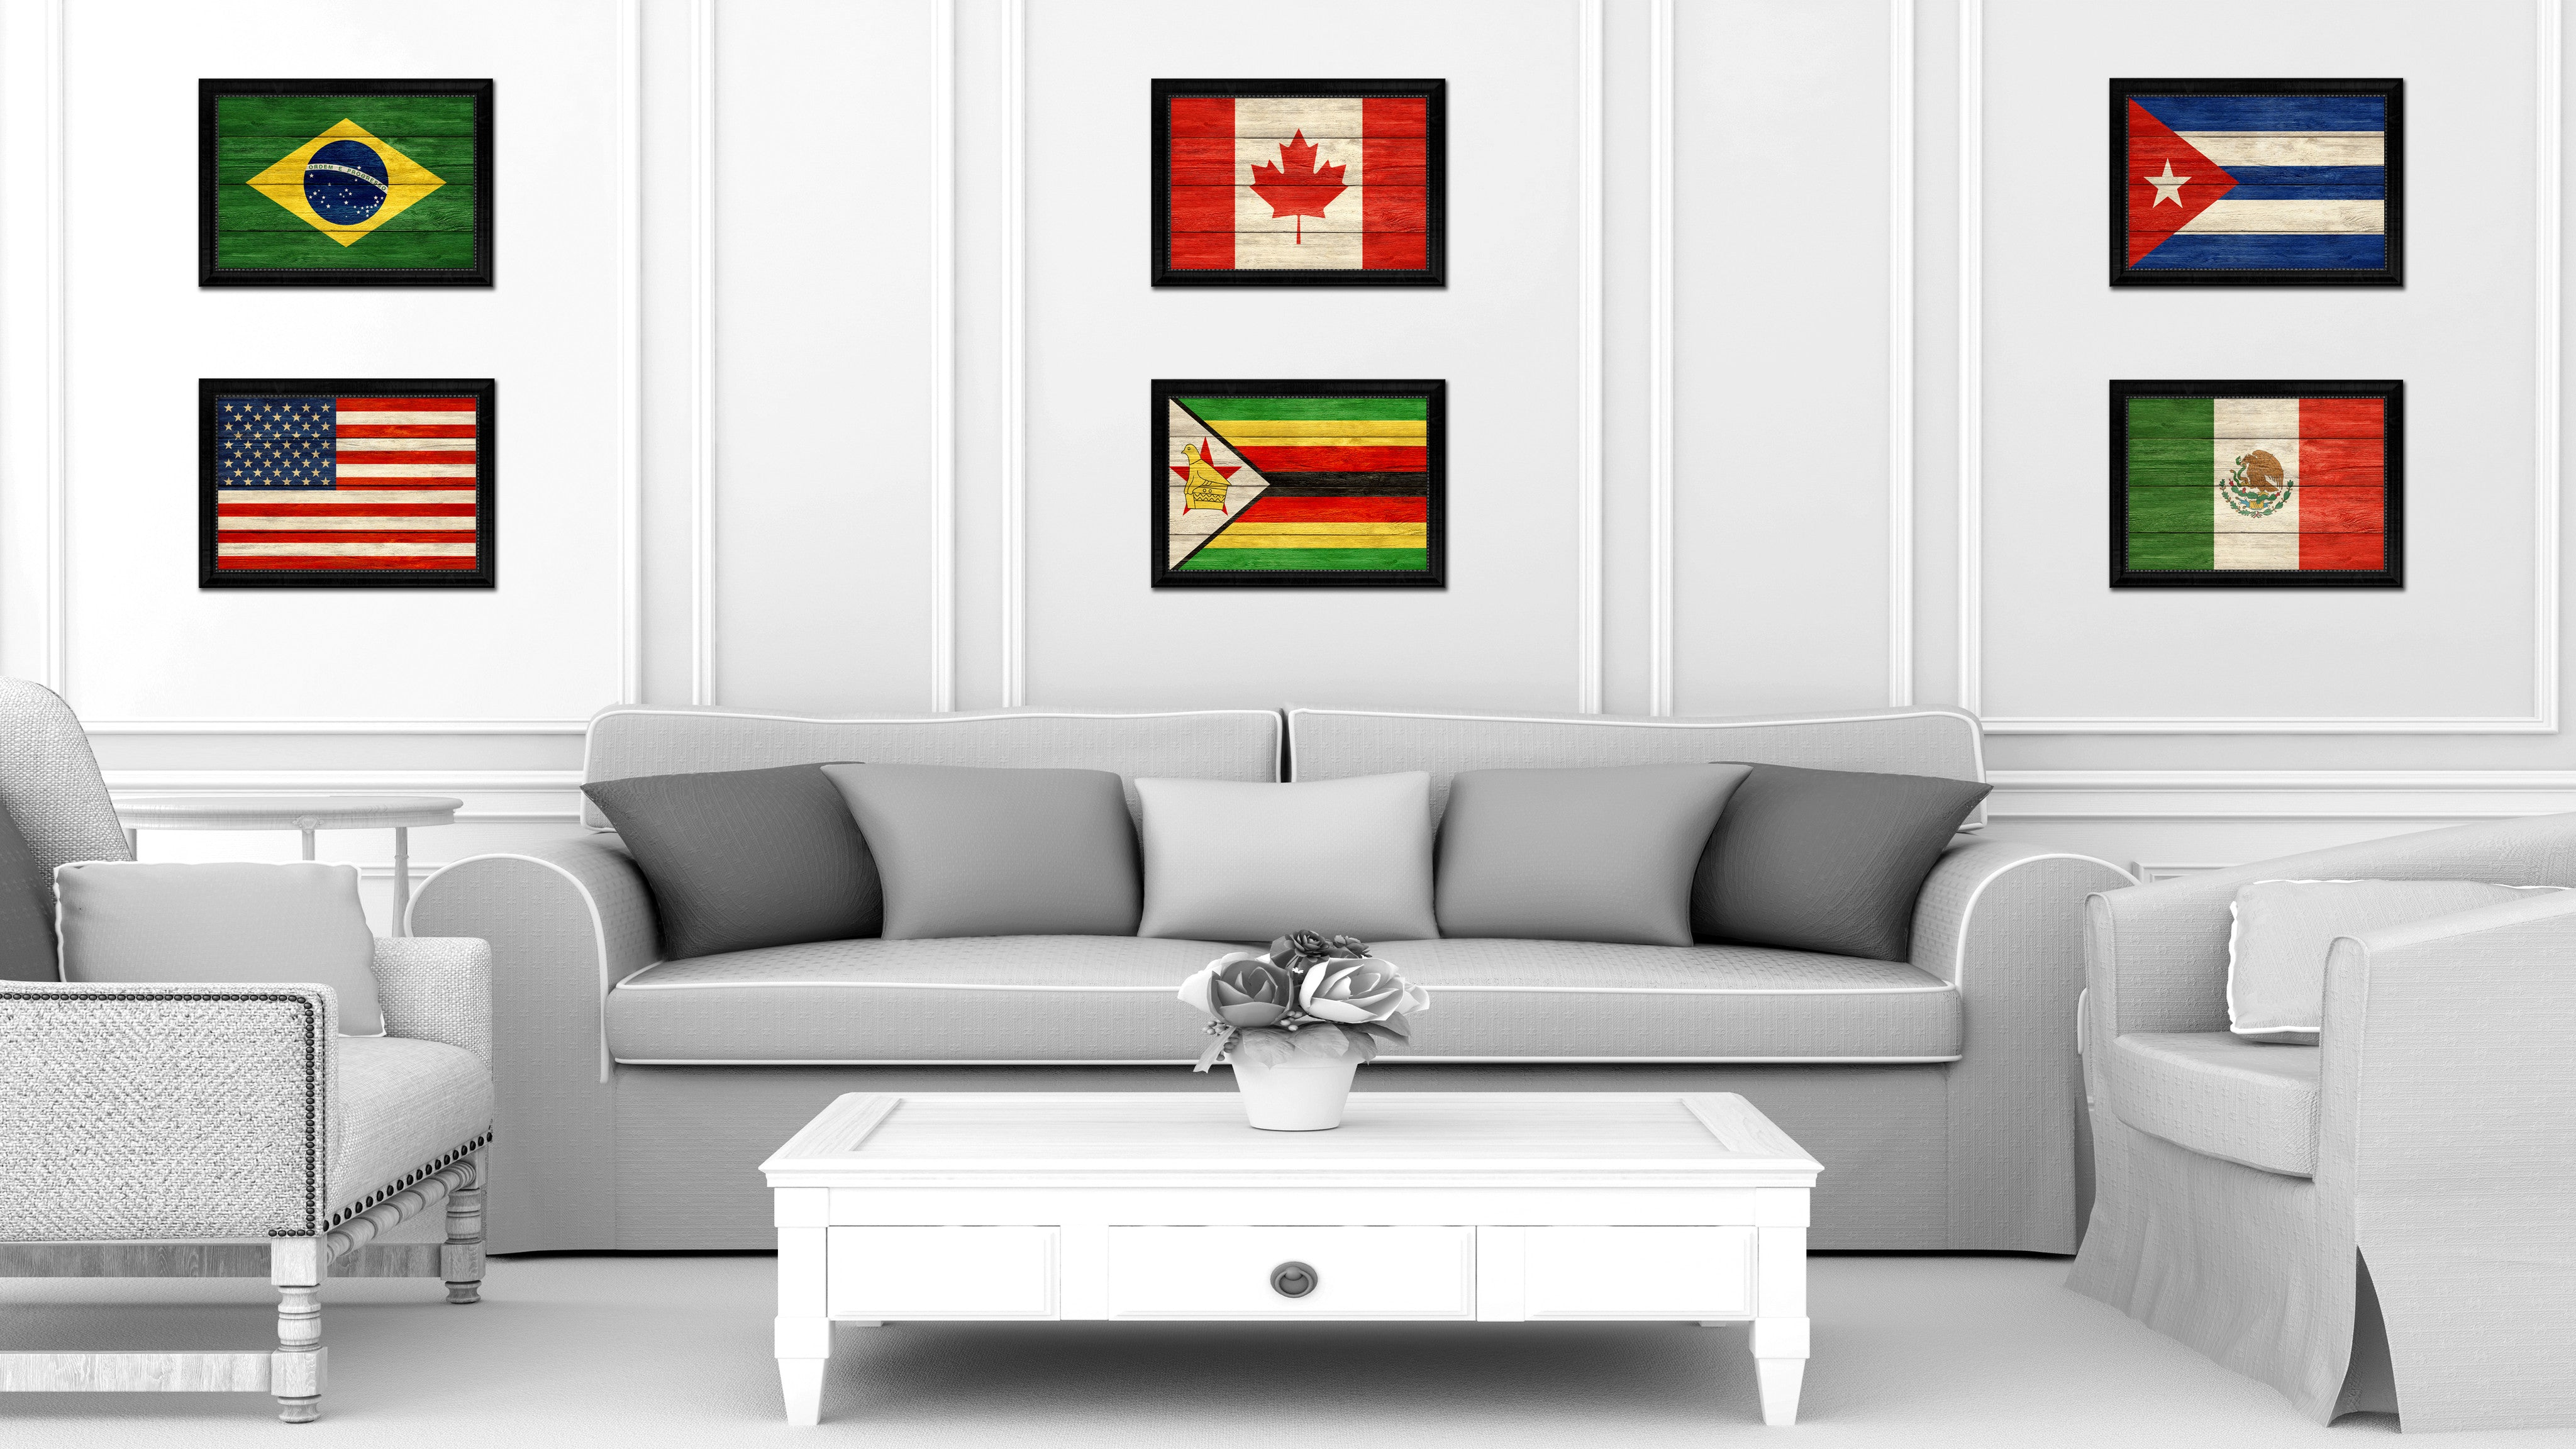 Zimbabwe Country Texture Flag Rustic Vintage Giclee Print Home Decor